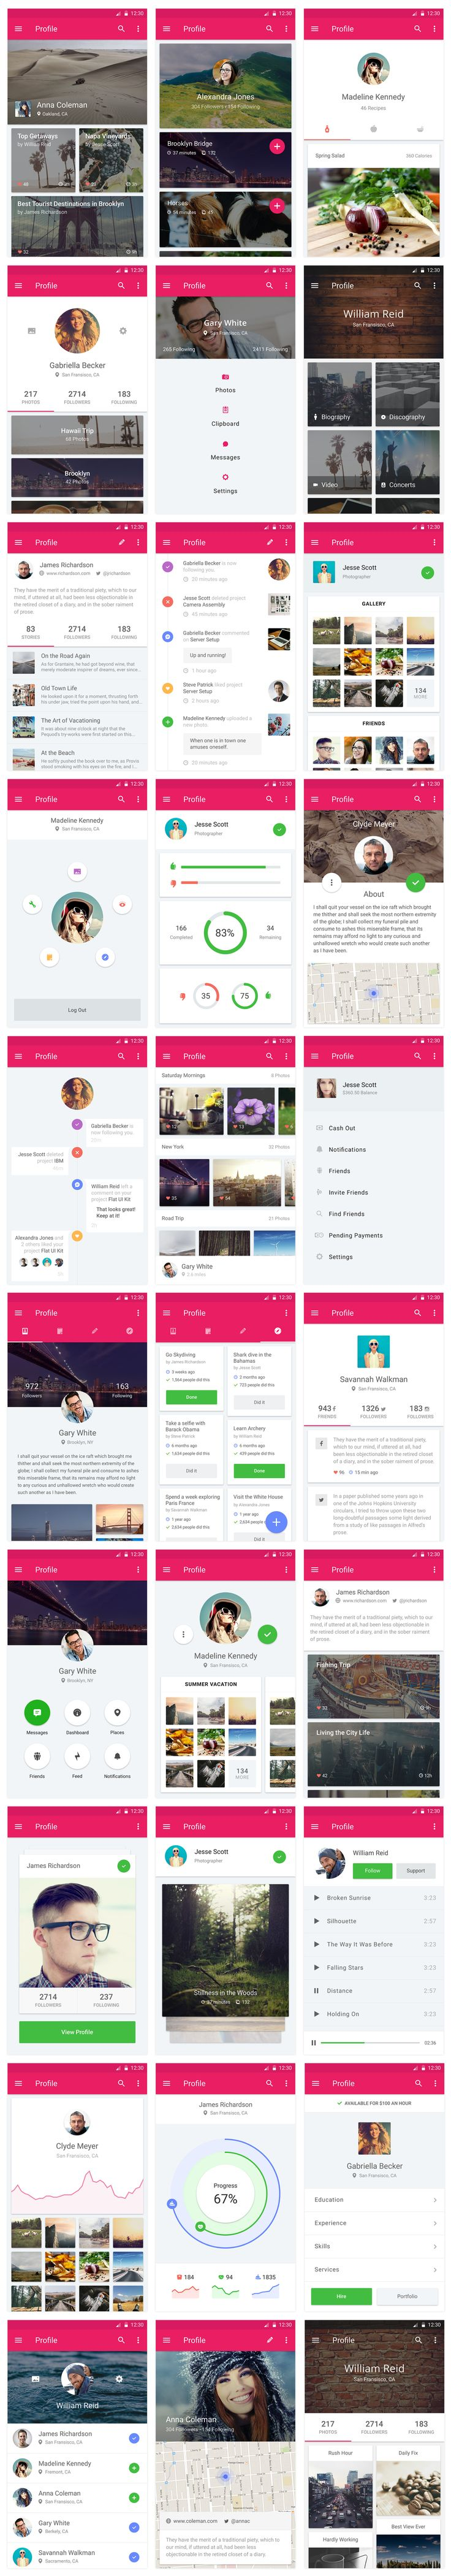 UI8 — Products — Material UI Kit